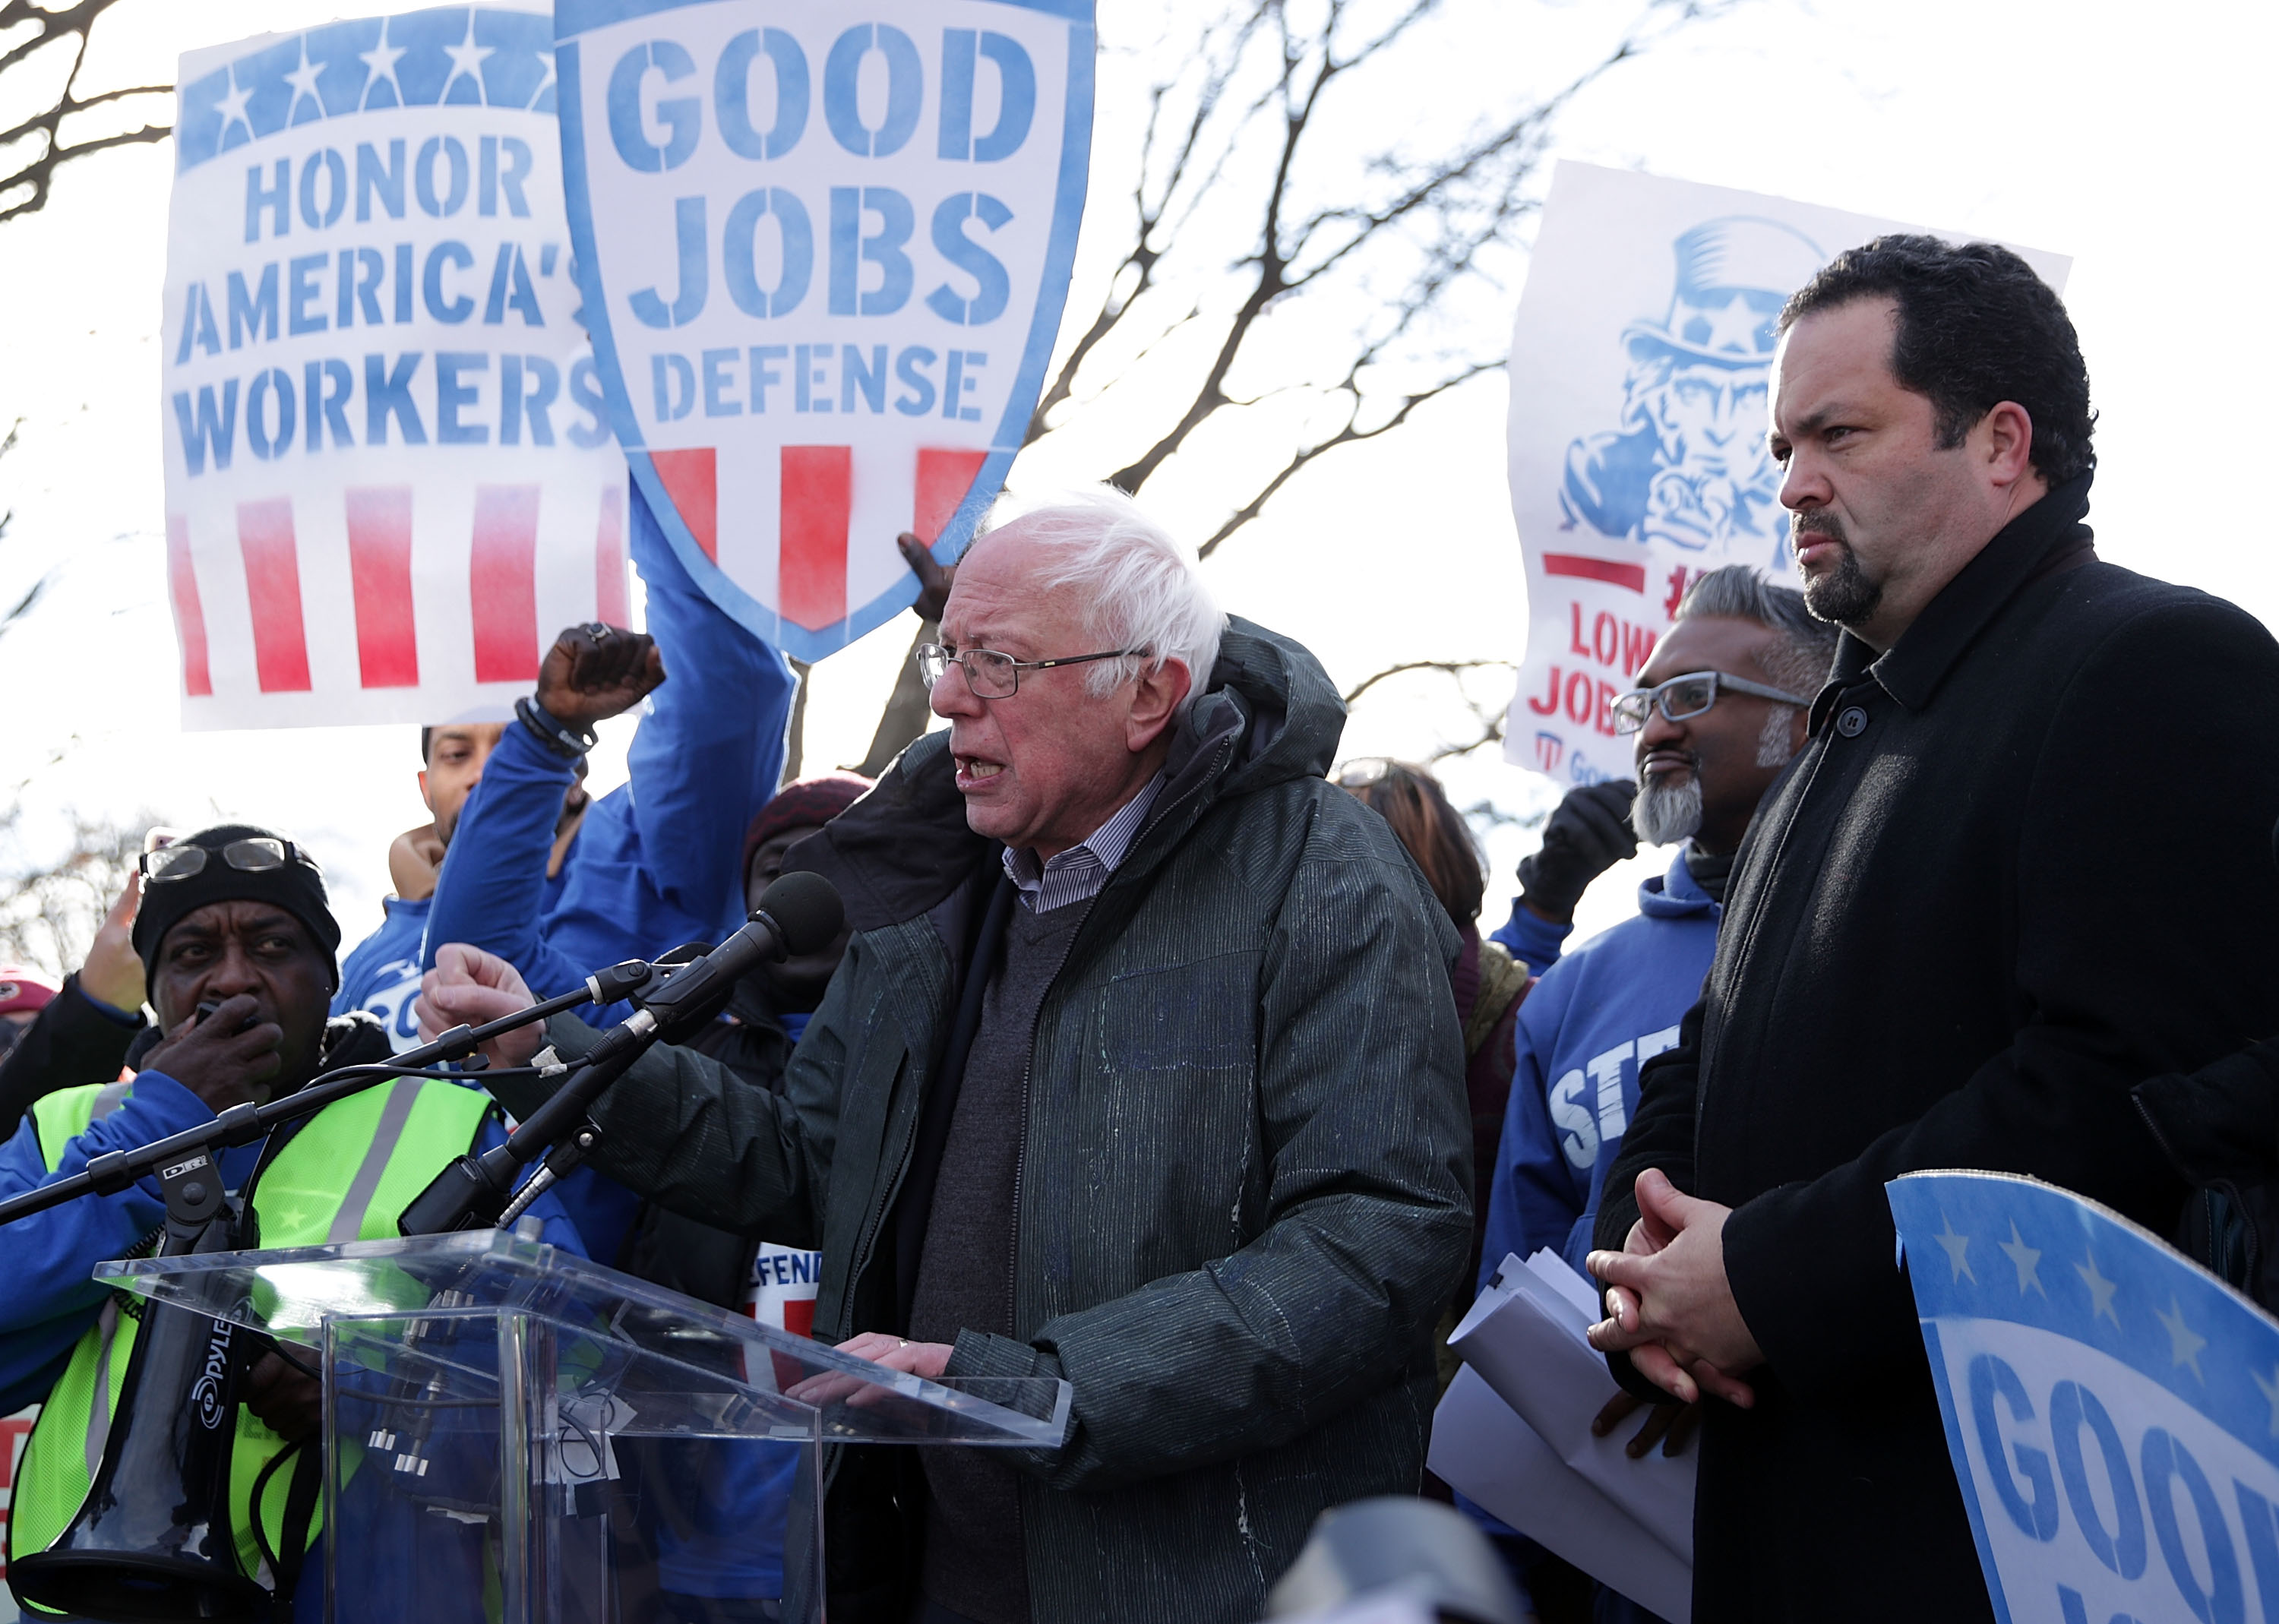 """U.S. Sen. Bernie Sanders (ID-VT) (C) speaks as former president and CEO of NAACP Ben Jealous (R) looks on during a rally """"to fight-back against the Republican war on the working class"""" February 16, 2017 at Upper Senate Park on Capitol Hill in Washington, DC. Alex Wong/Getty Images"""